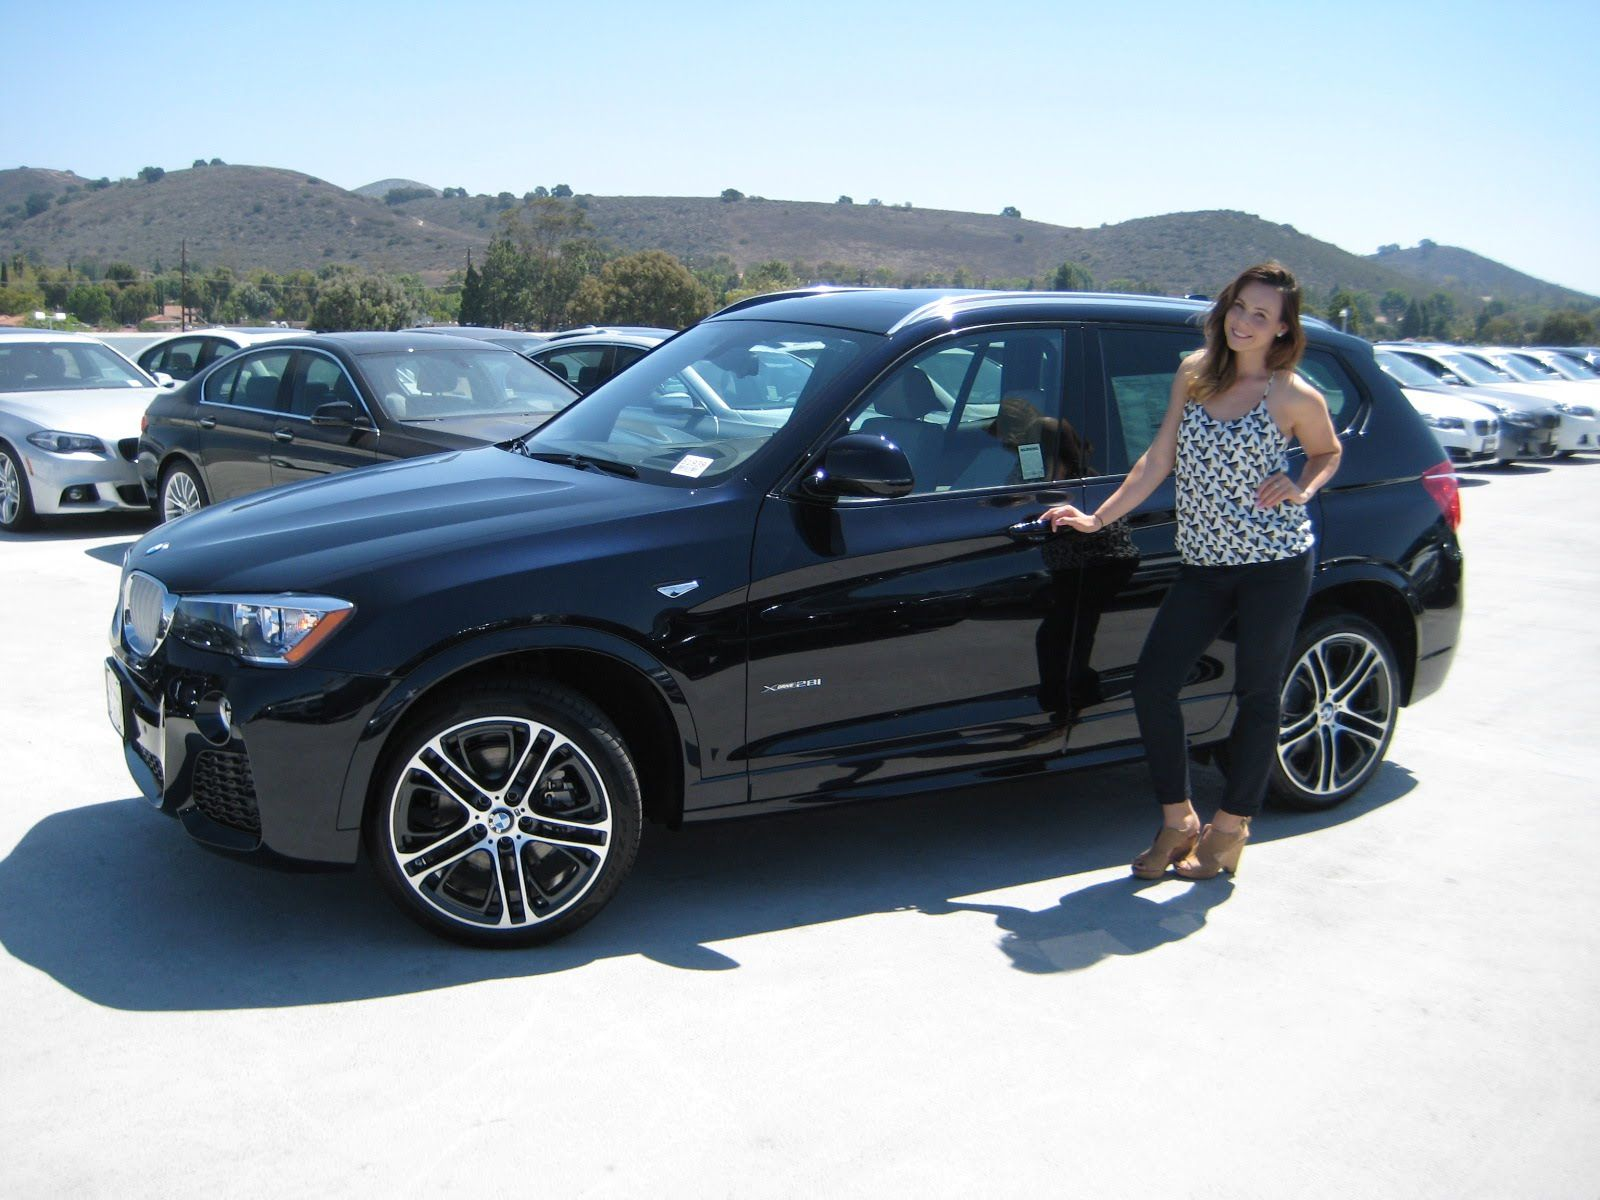 New 2016 Bmw X3 Xdrive 28i Carbon Black Metallic With Oyster